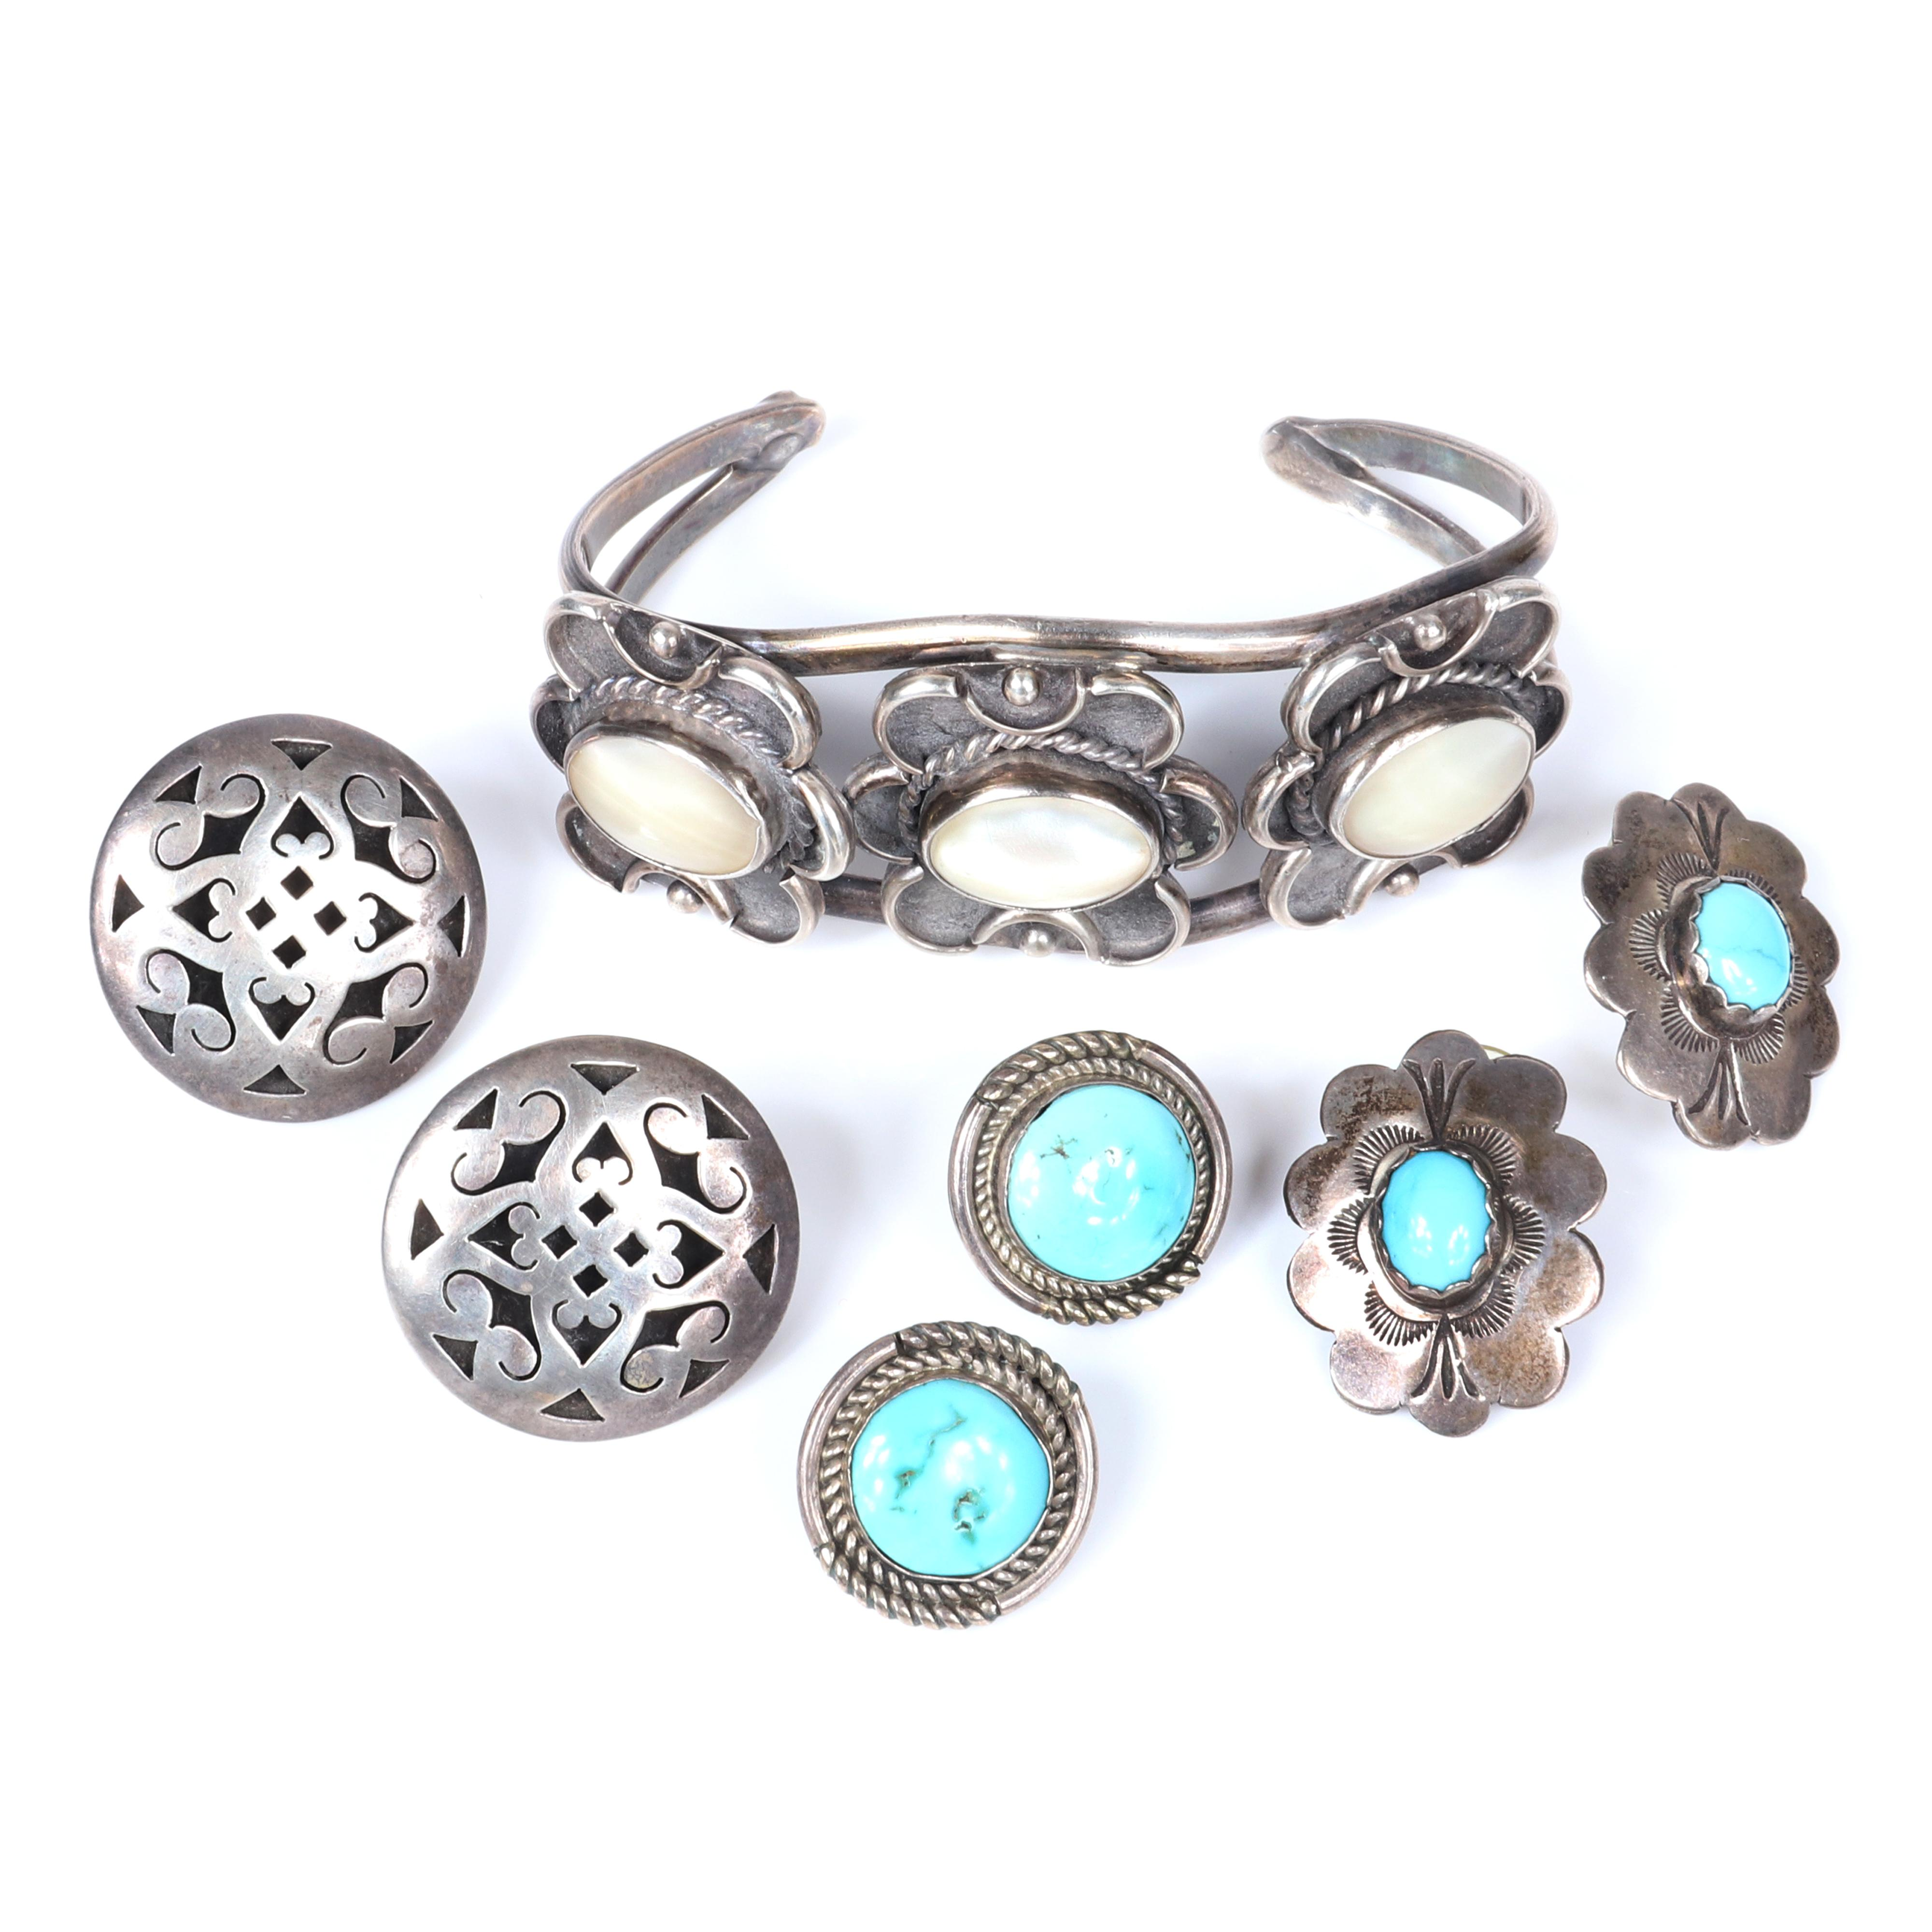 """Sterling silver and stone 4pc group: cuff bracelet with white shell cabochons, concho earrings with turquoise, Mexican silver openwork earrings, turquoise button earrings. 2 3/4"""" inner width (bracelet), 51.2g (all)"""